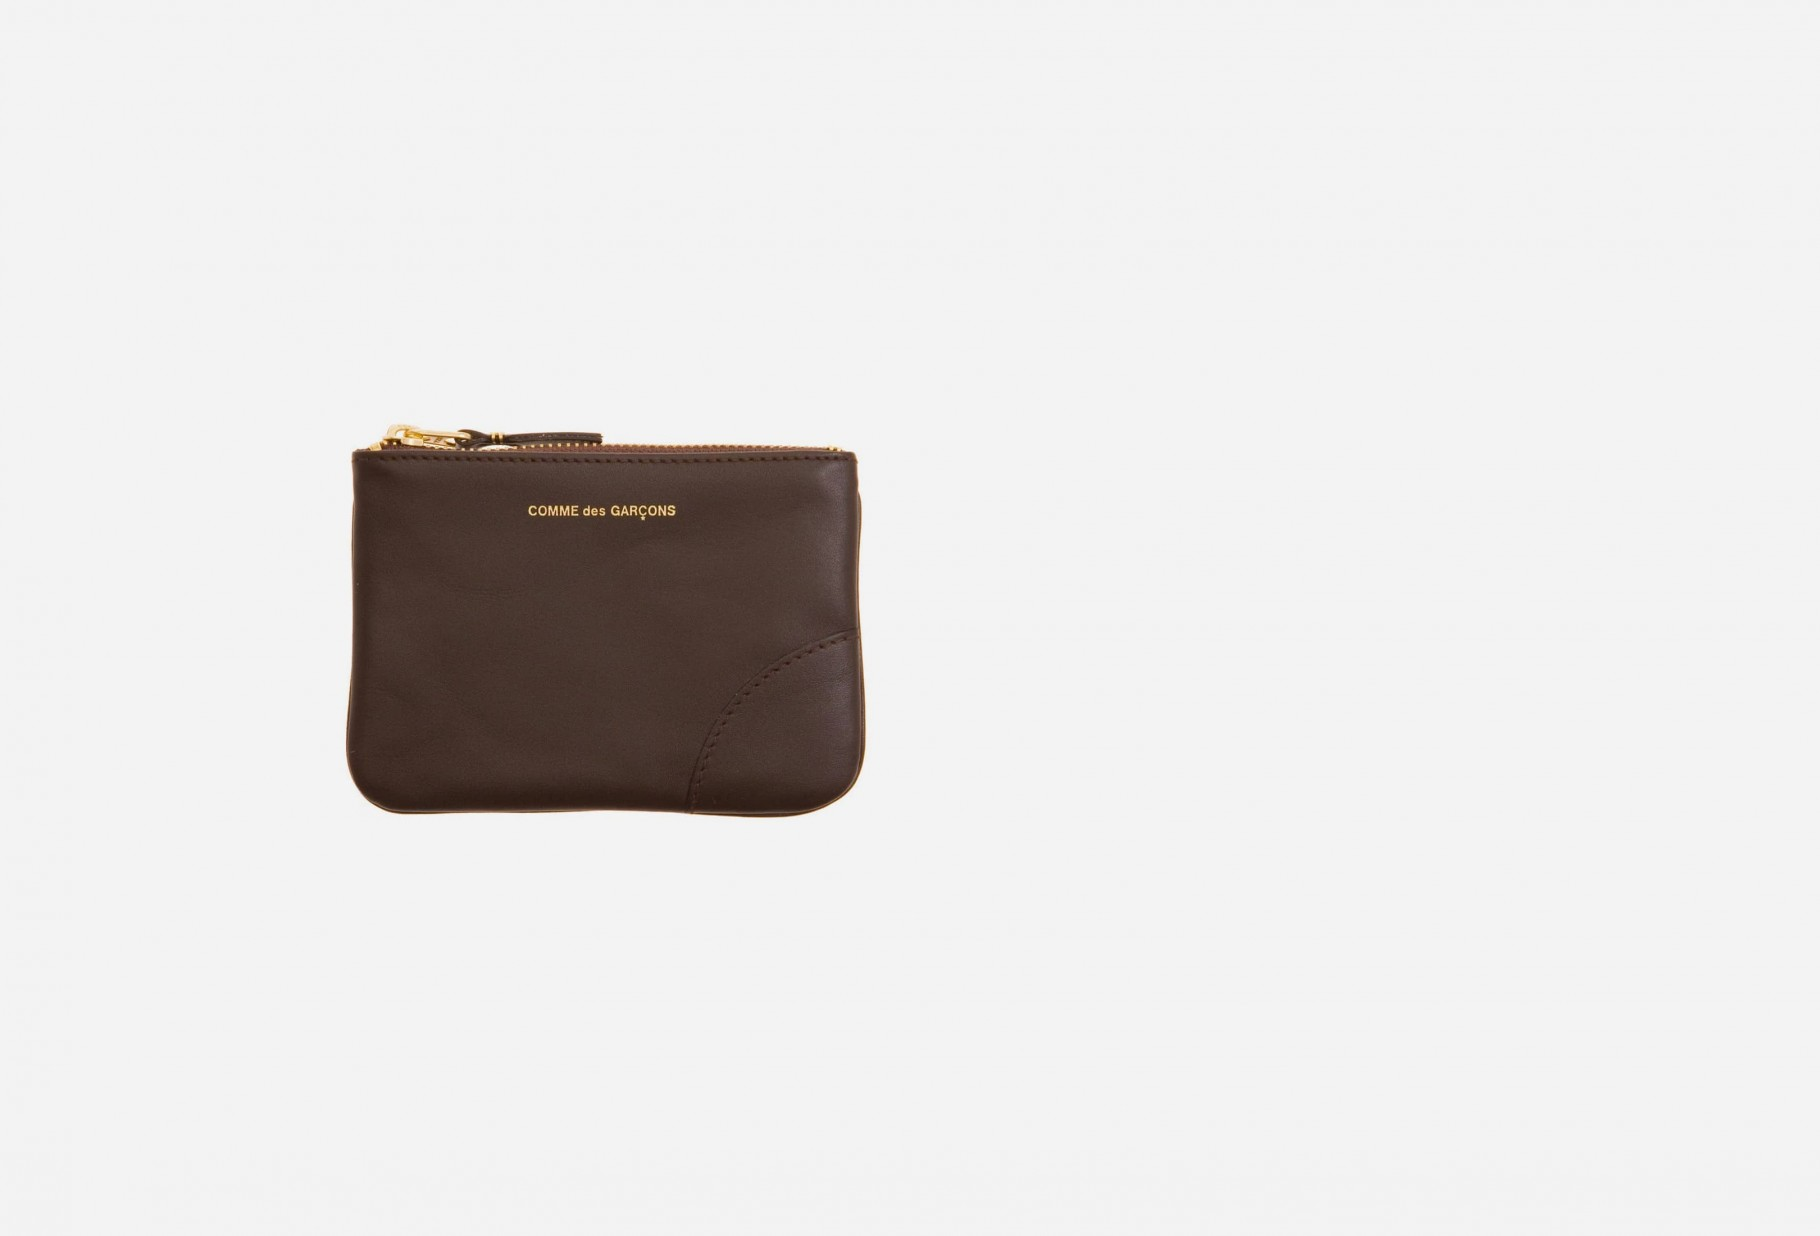 CDG WALLETS FOR WOMAN / Cdg classic leather sa8100 Brown